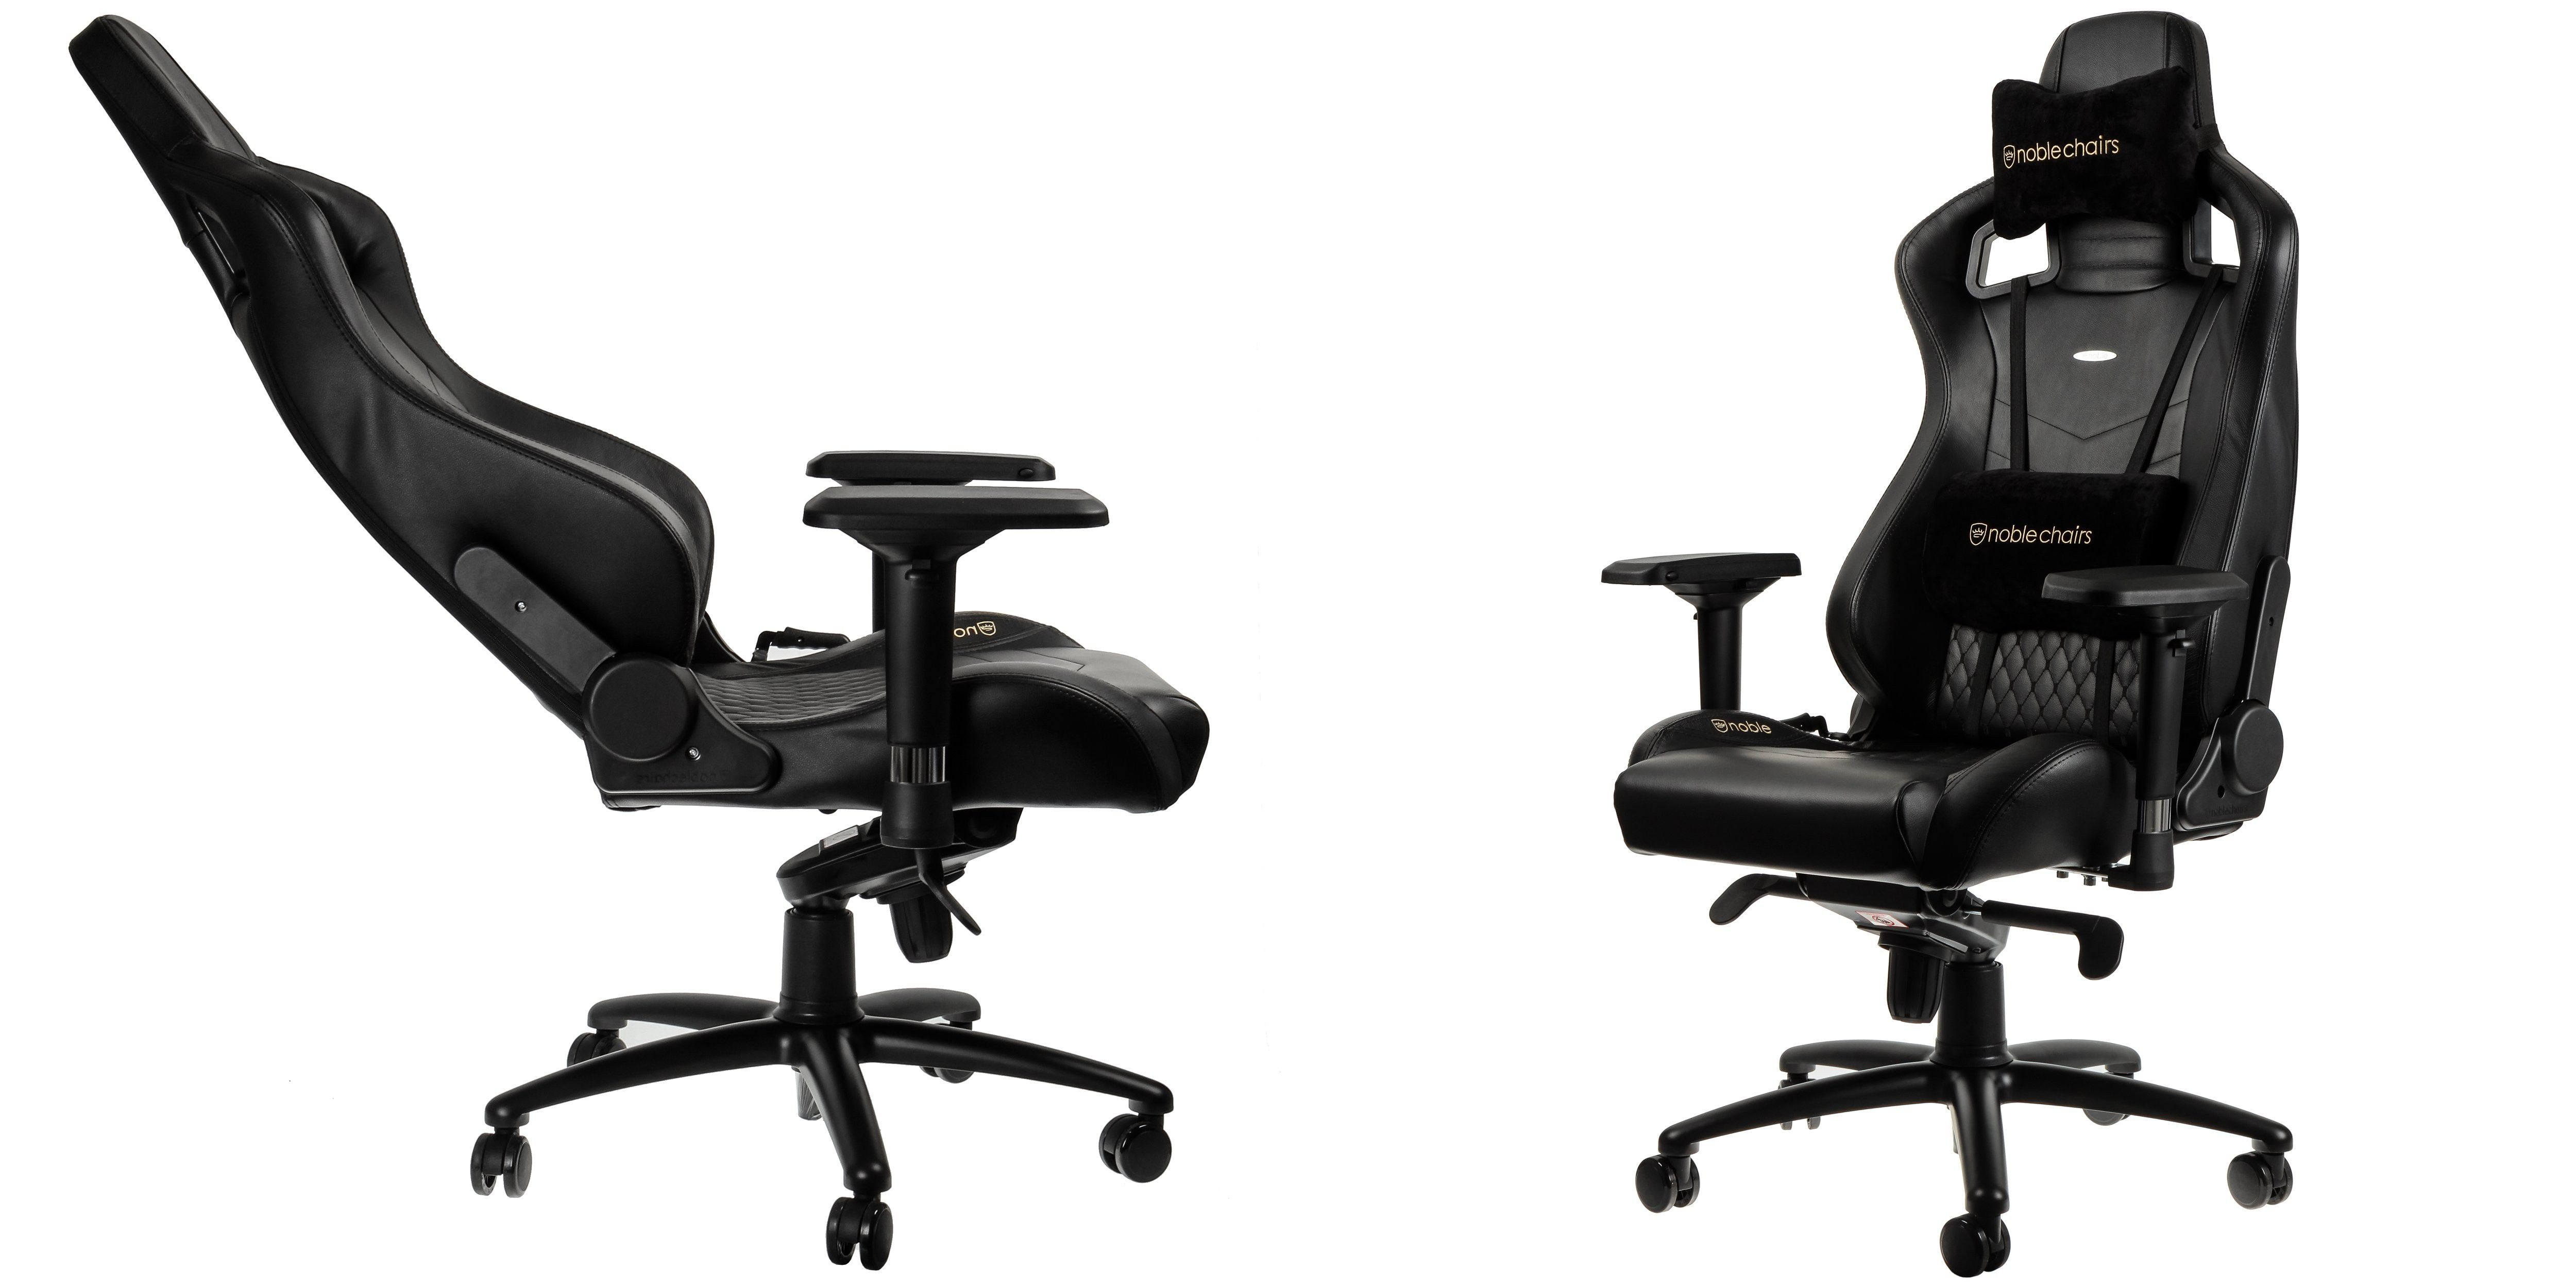 Gaming Sessel Mit Lenkrad Noblechairs Epic Echtleder Der Gaming Chair Der Höllenmaschine